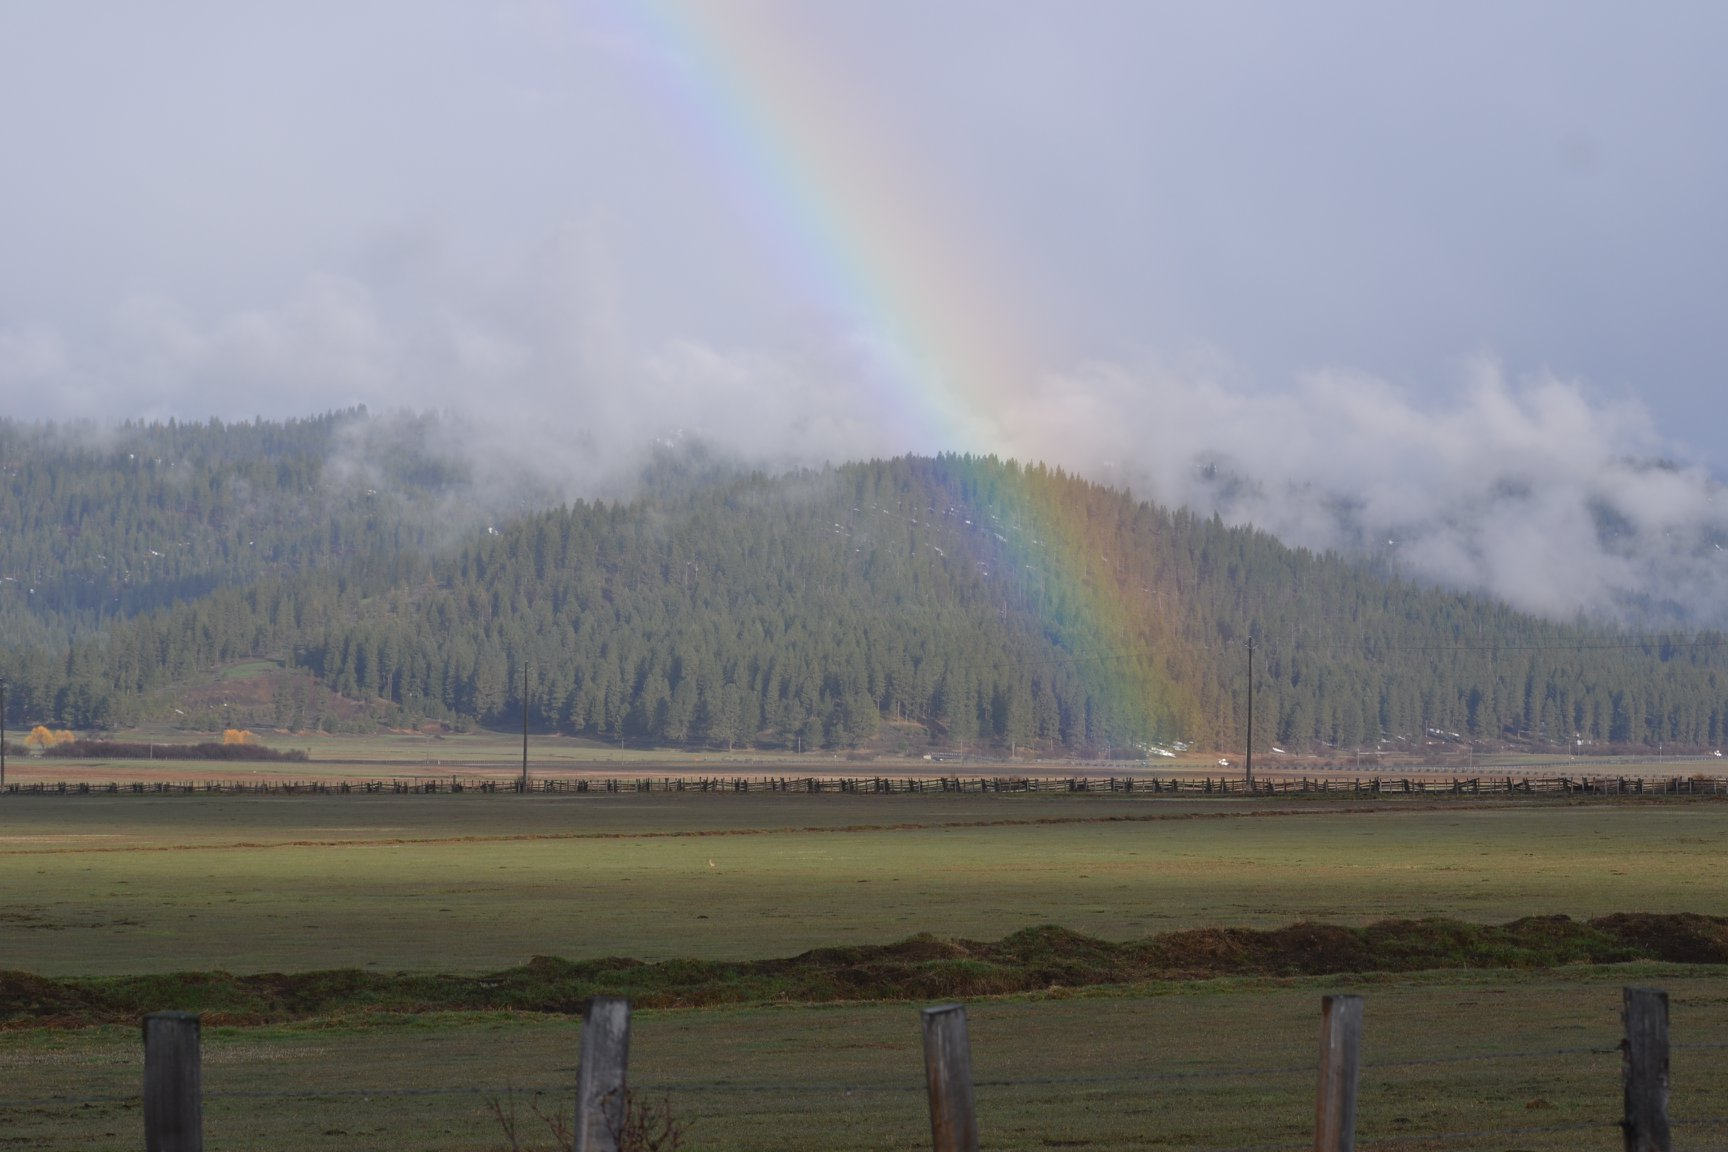 an open grassy meadow with foggy mountains in the background. A rainbow stretches across the sky and a small dot of a Long-billed curlew can be seen walking through the meadow.